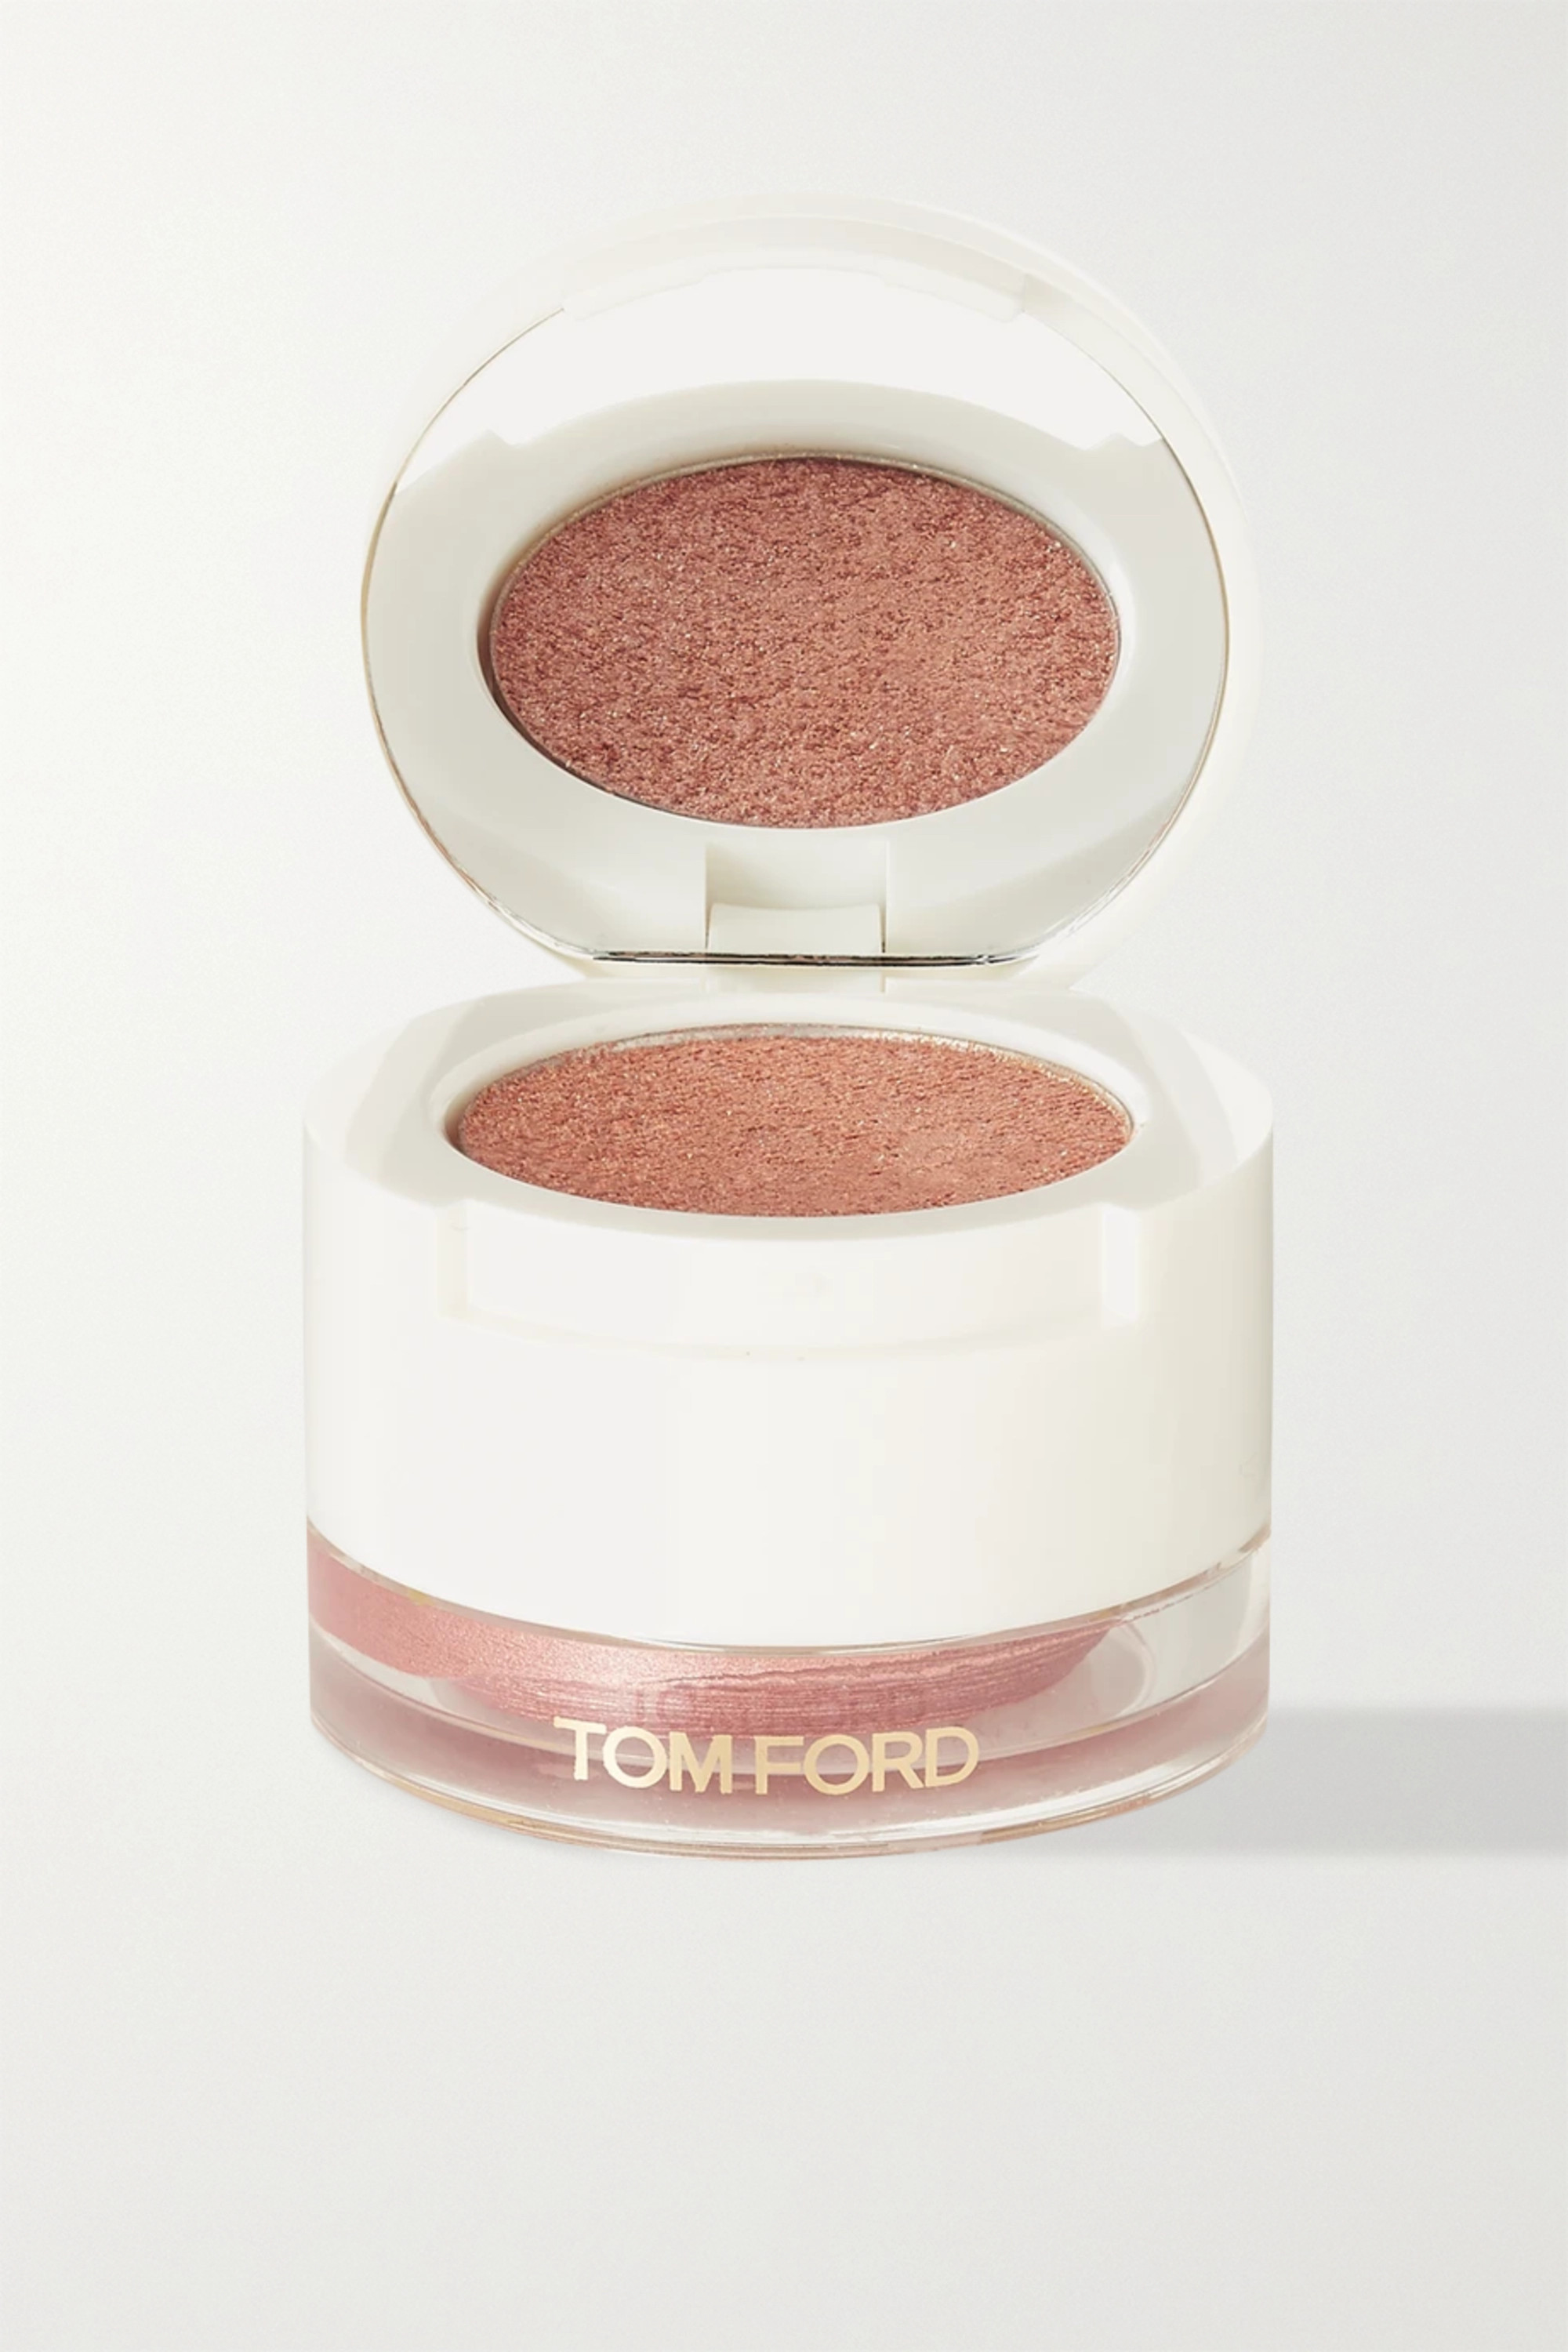 TOM FORD BEAUTY Cream and Powder Eye Color – Golden Peach – Lidschatten